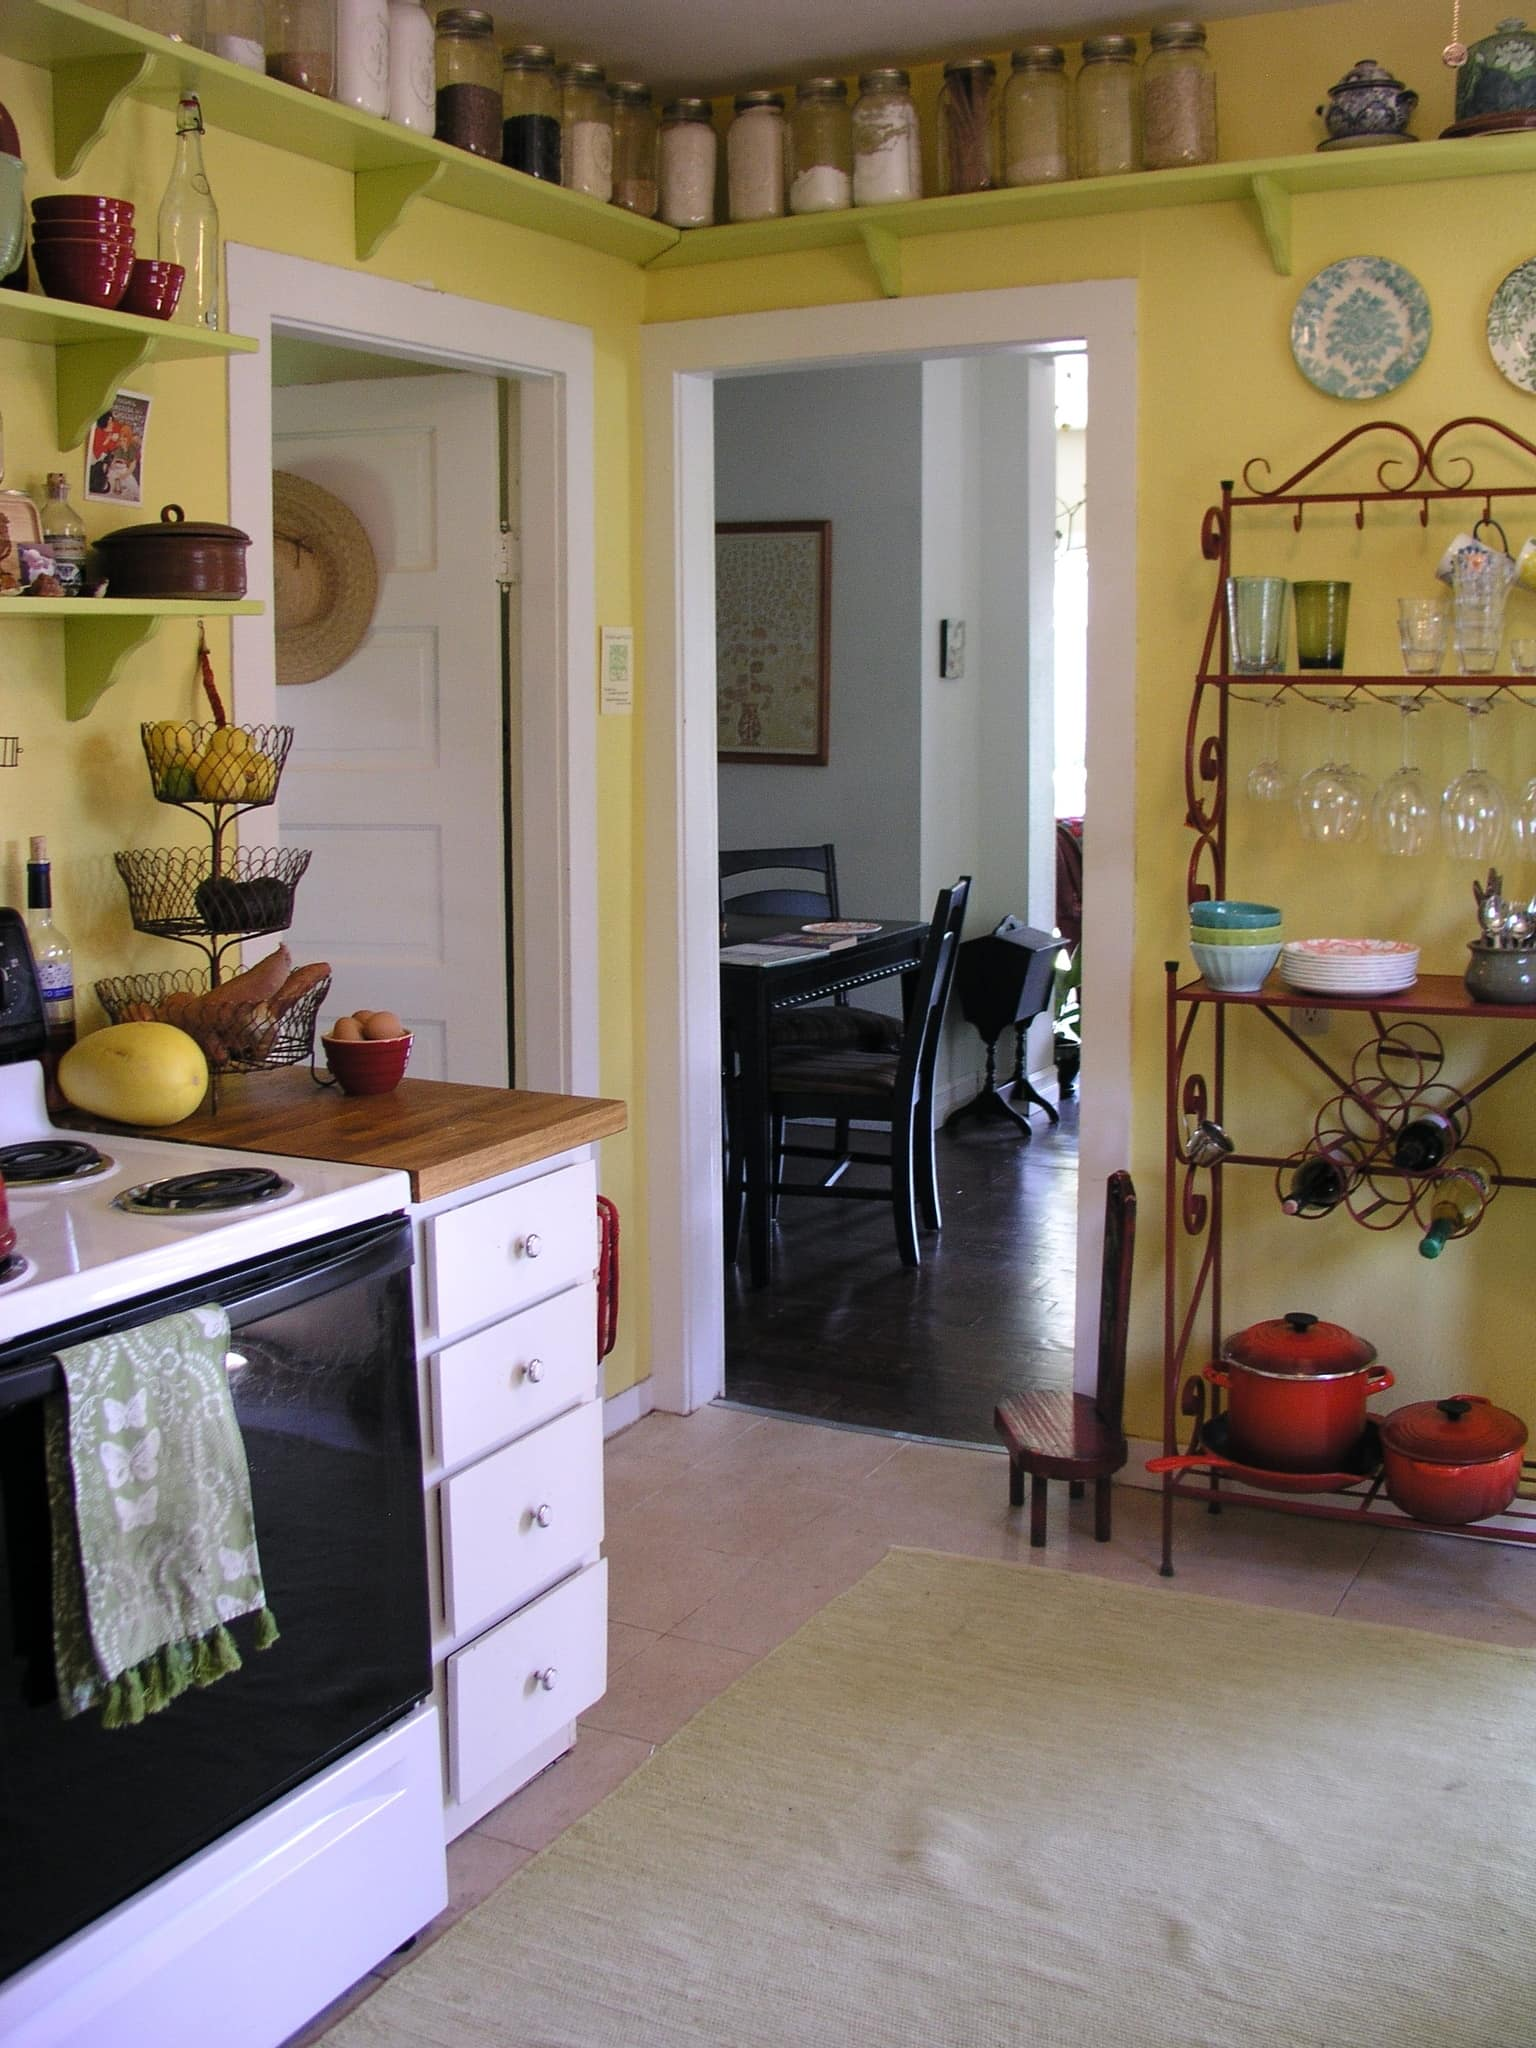 Ariana's Cheerful, Colorful Portland Kitchen: gallery image 1